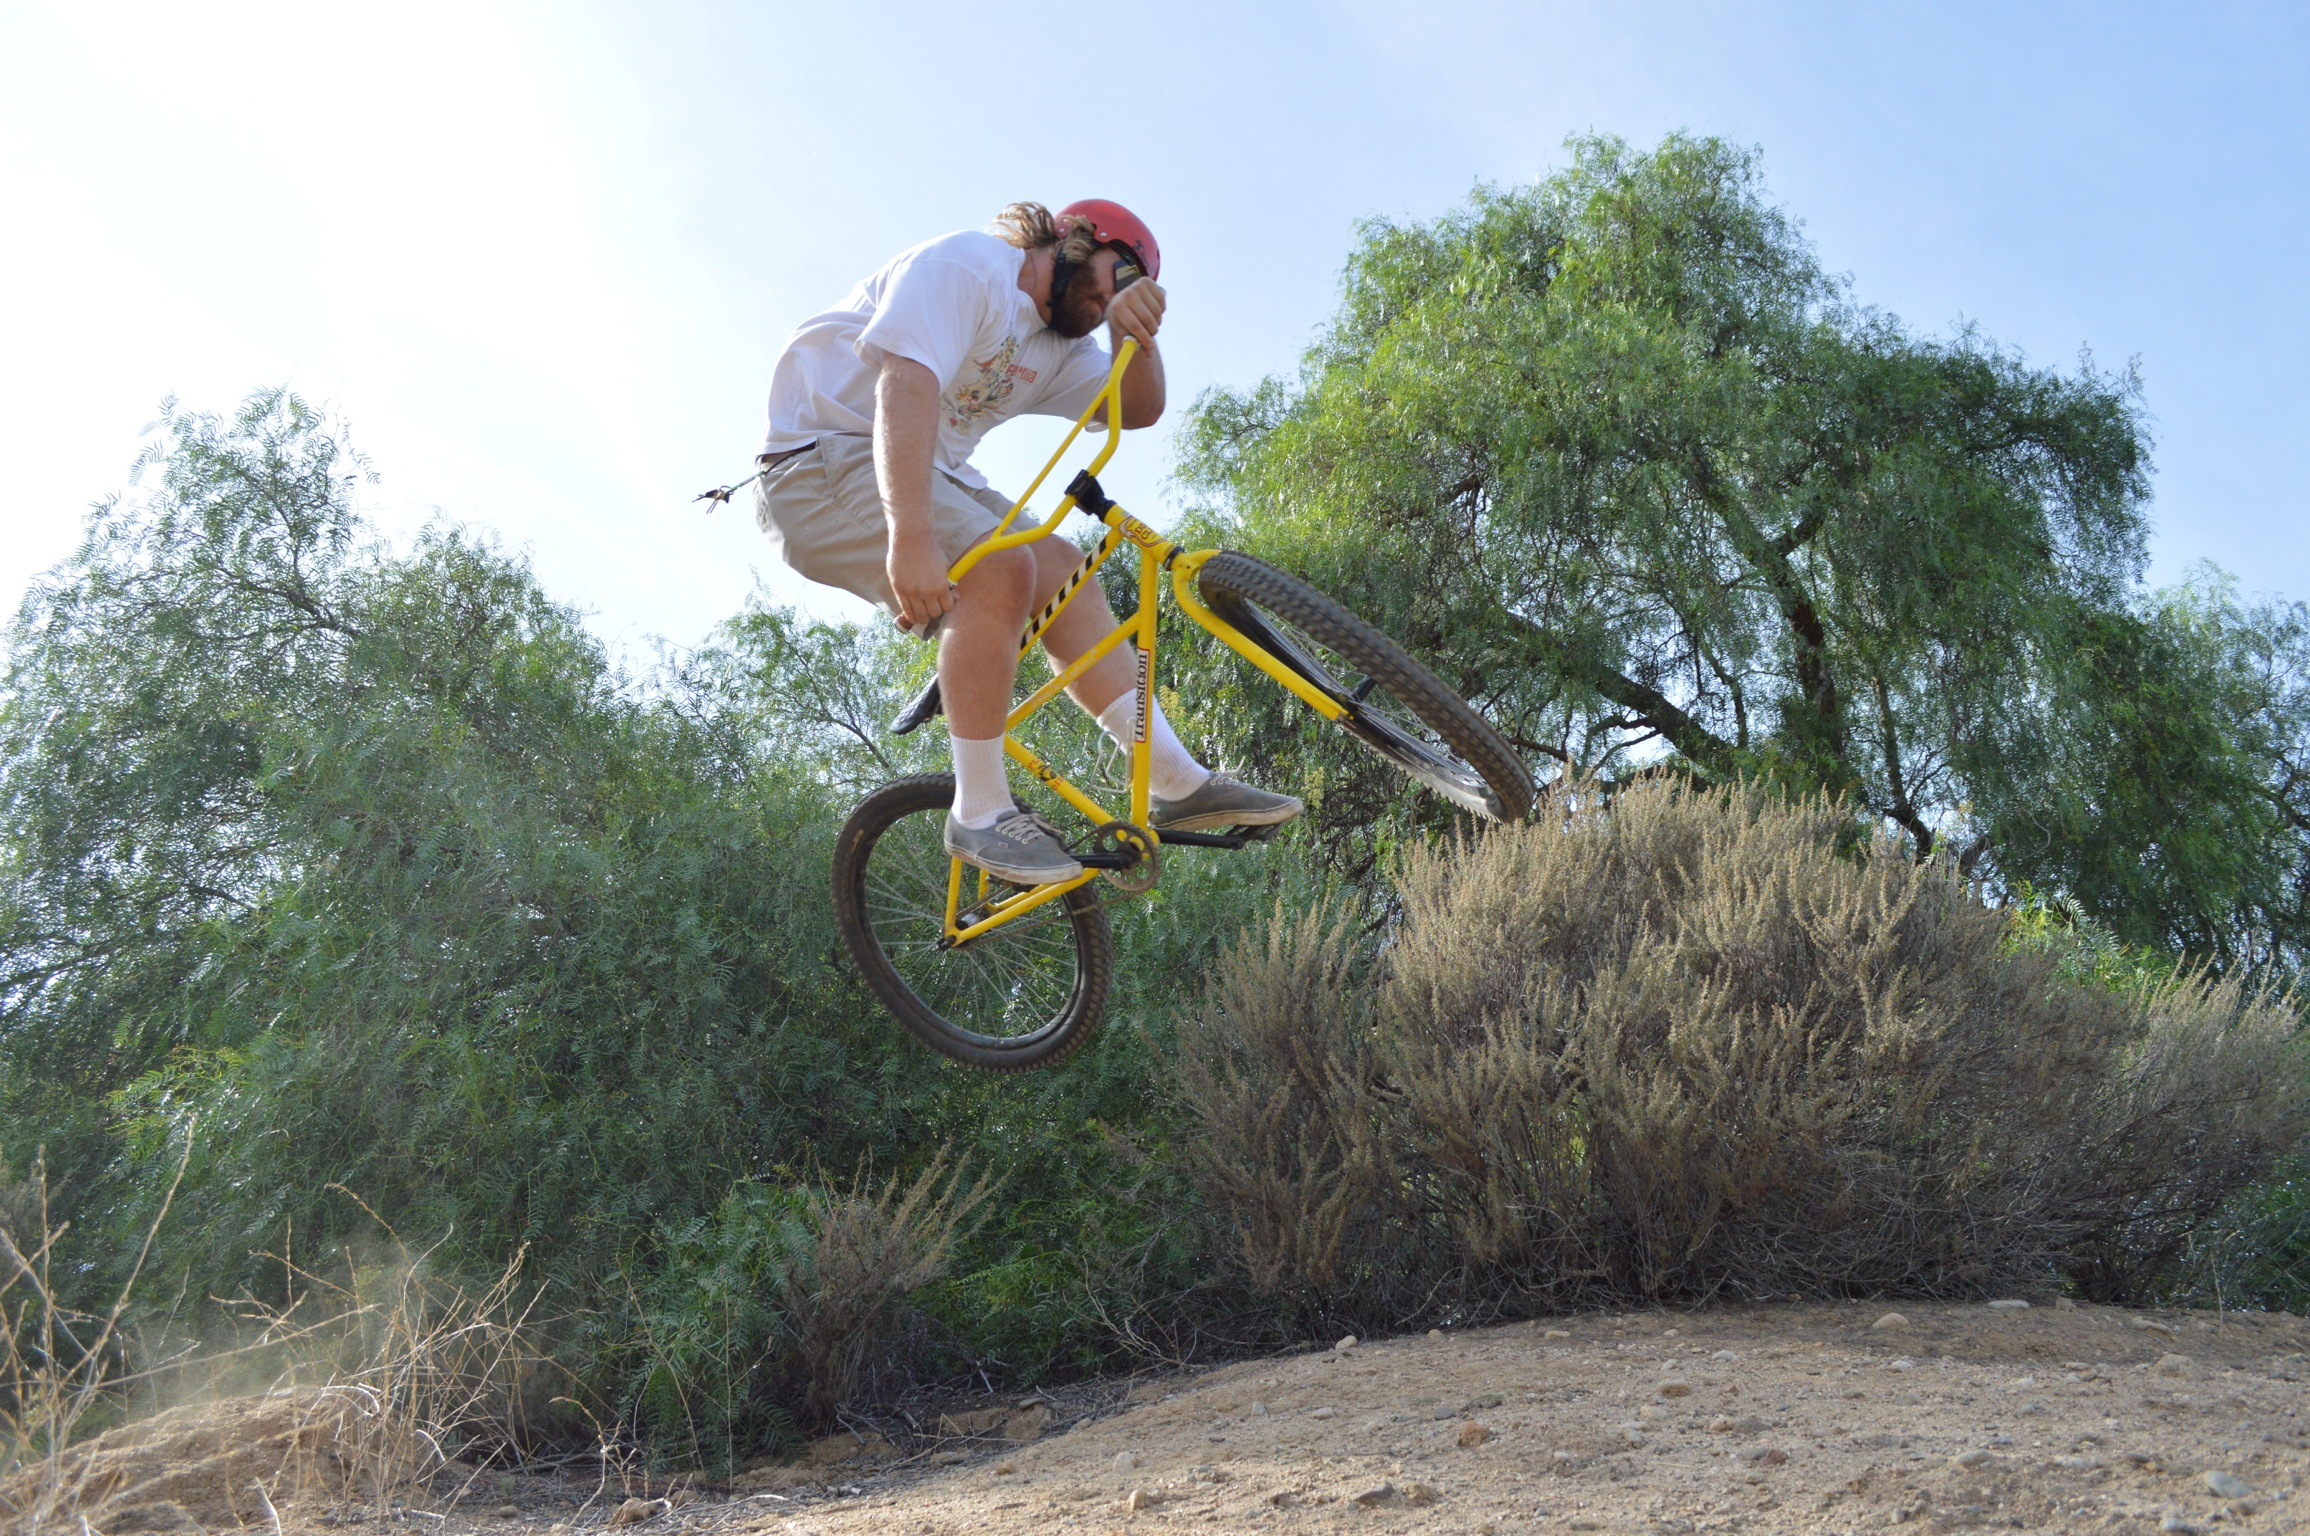 """Carl Hulick getting rowdy on the Transition Klunker. A wise man once said, """"keep it simple stupid"""". Well the klunker is about as simple as it gets. Fully rigid, chromoly steel fork, no hand brakes, and a damn good time. The klunker puts all technology aside and focuses on what really matters. Its all about riding your bike and having a damn good time doing it."""